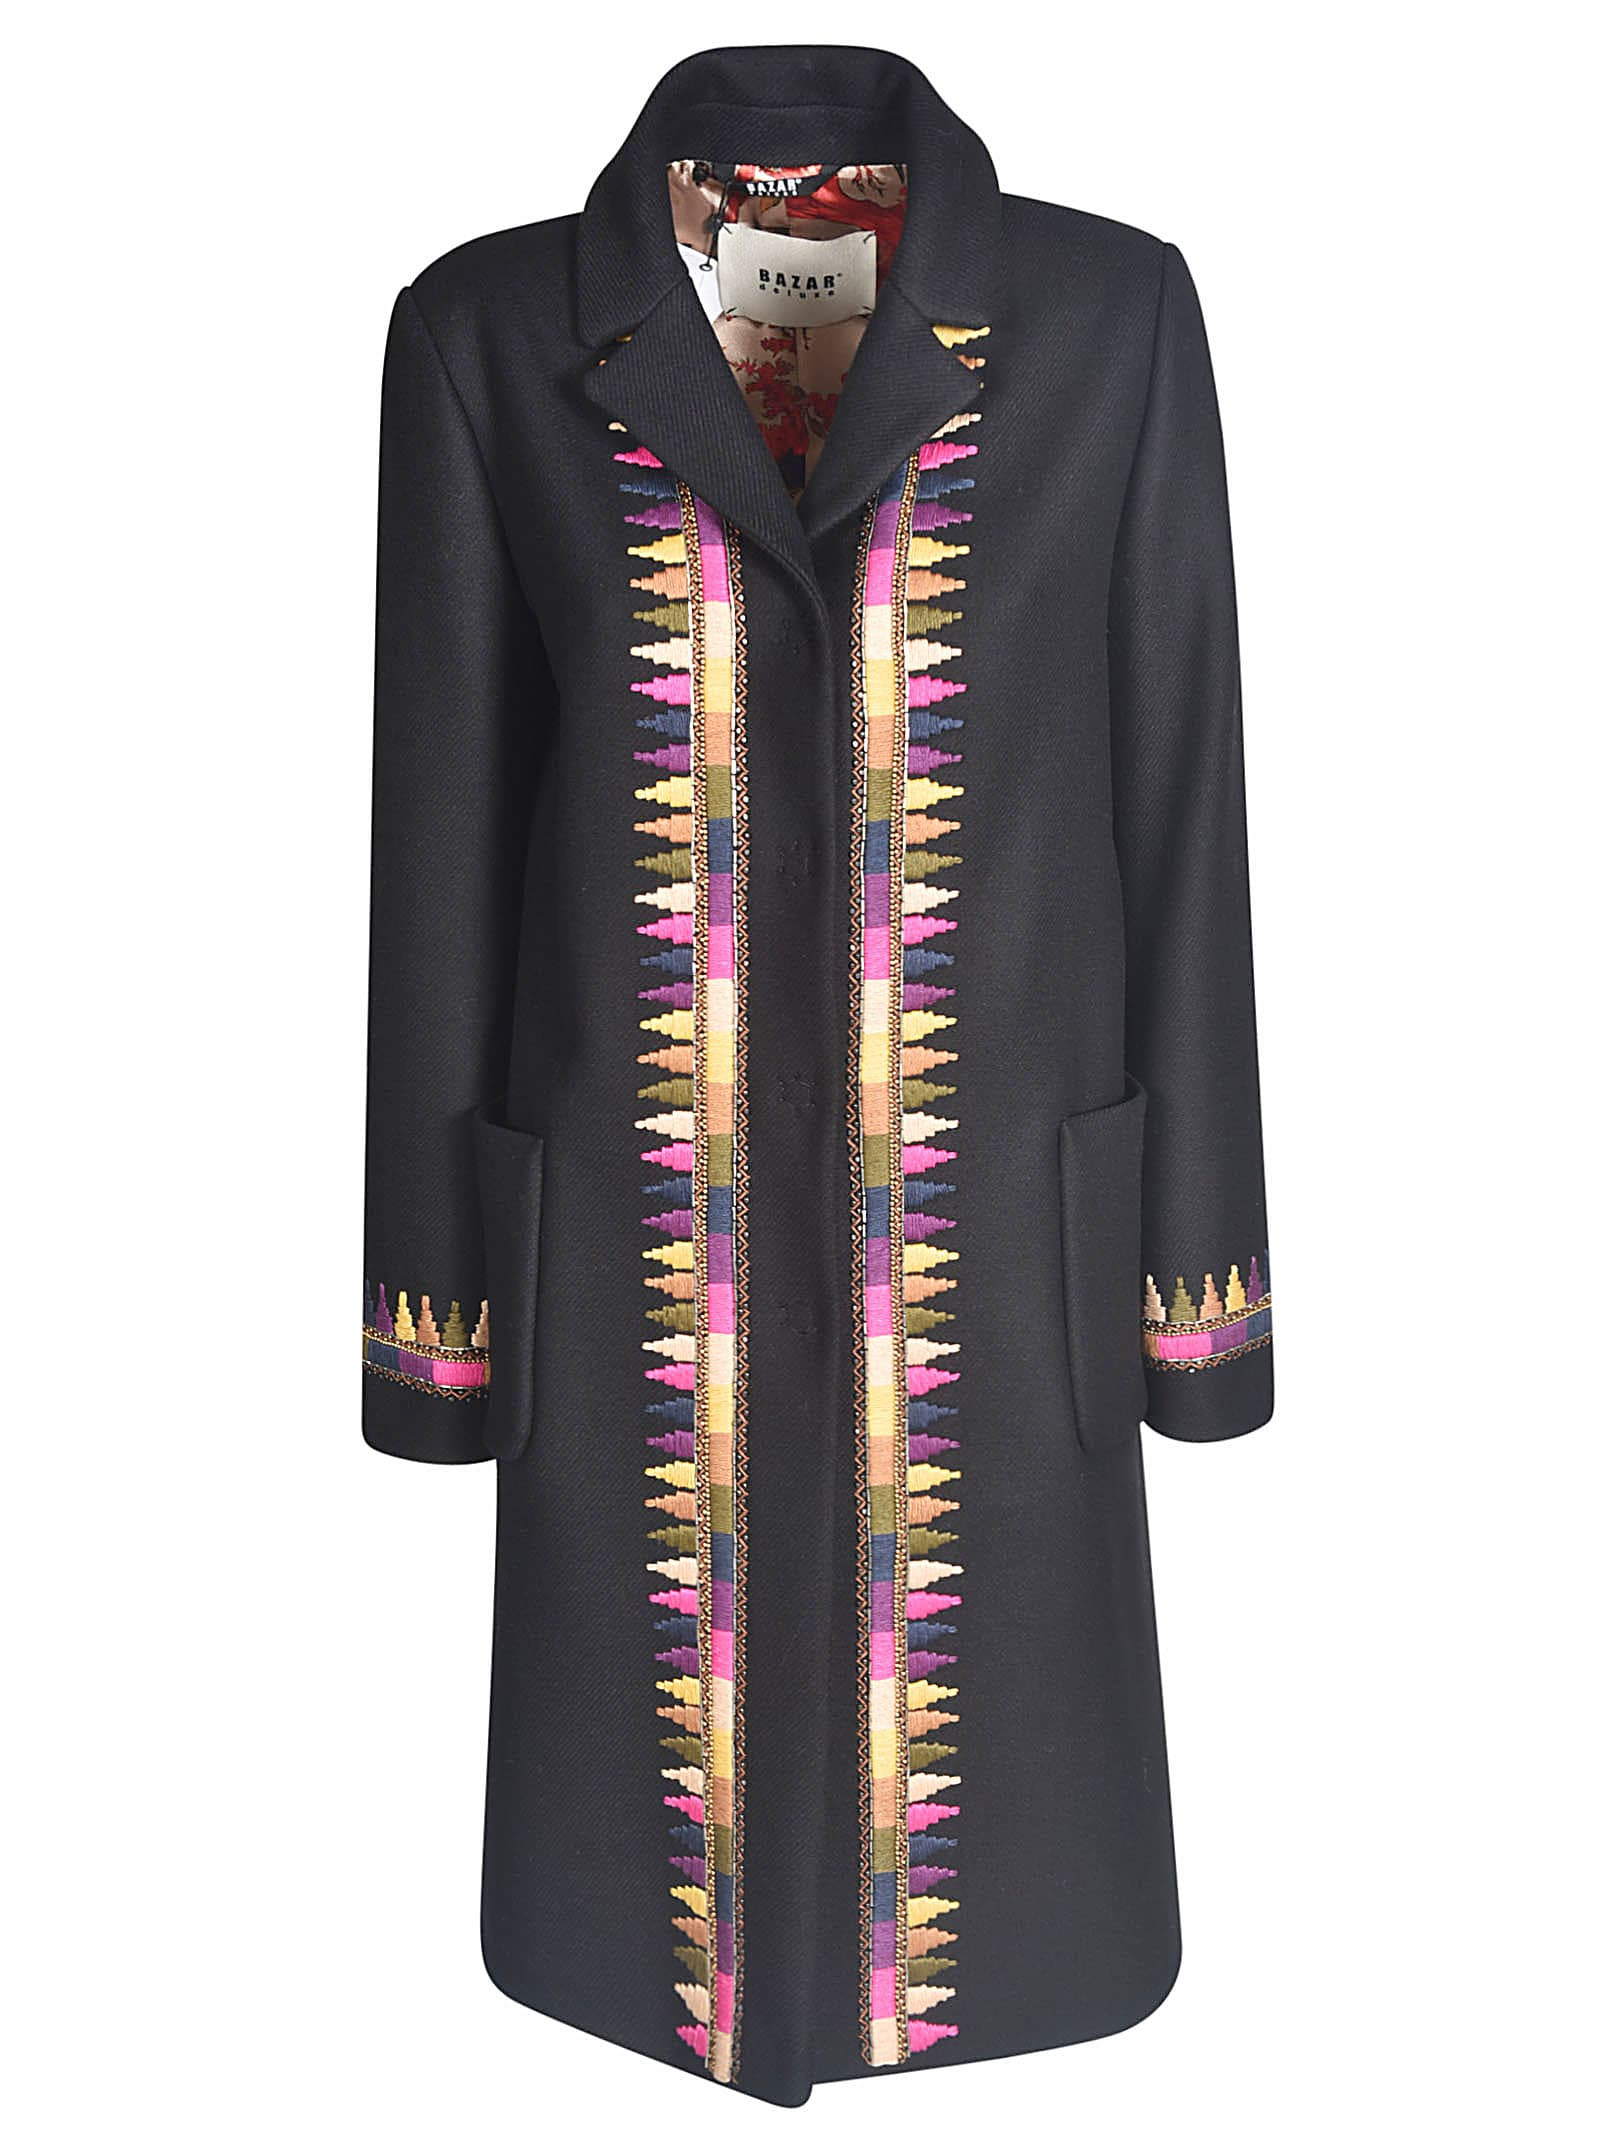 Concealed Long Coat from Bazar DeluxeComposition: 50% Acrylic, 20% Wool, 25% Polyester, 5% Other Fibers